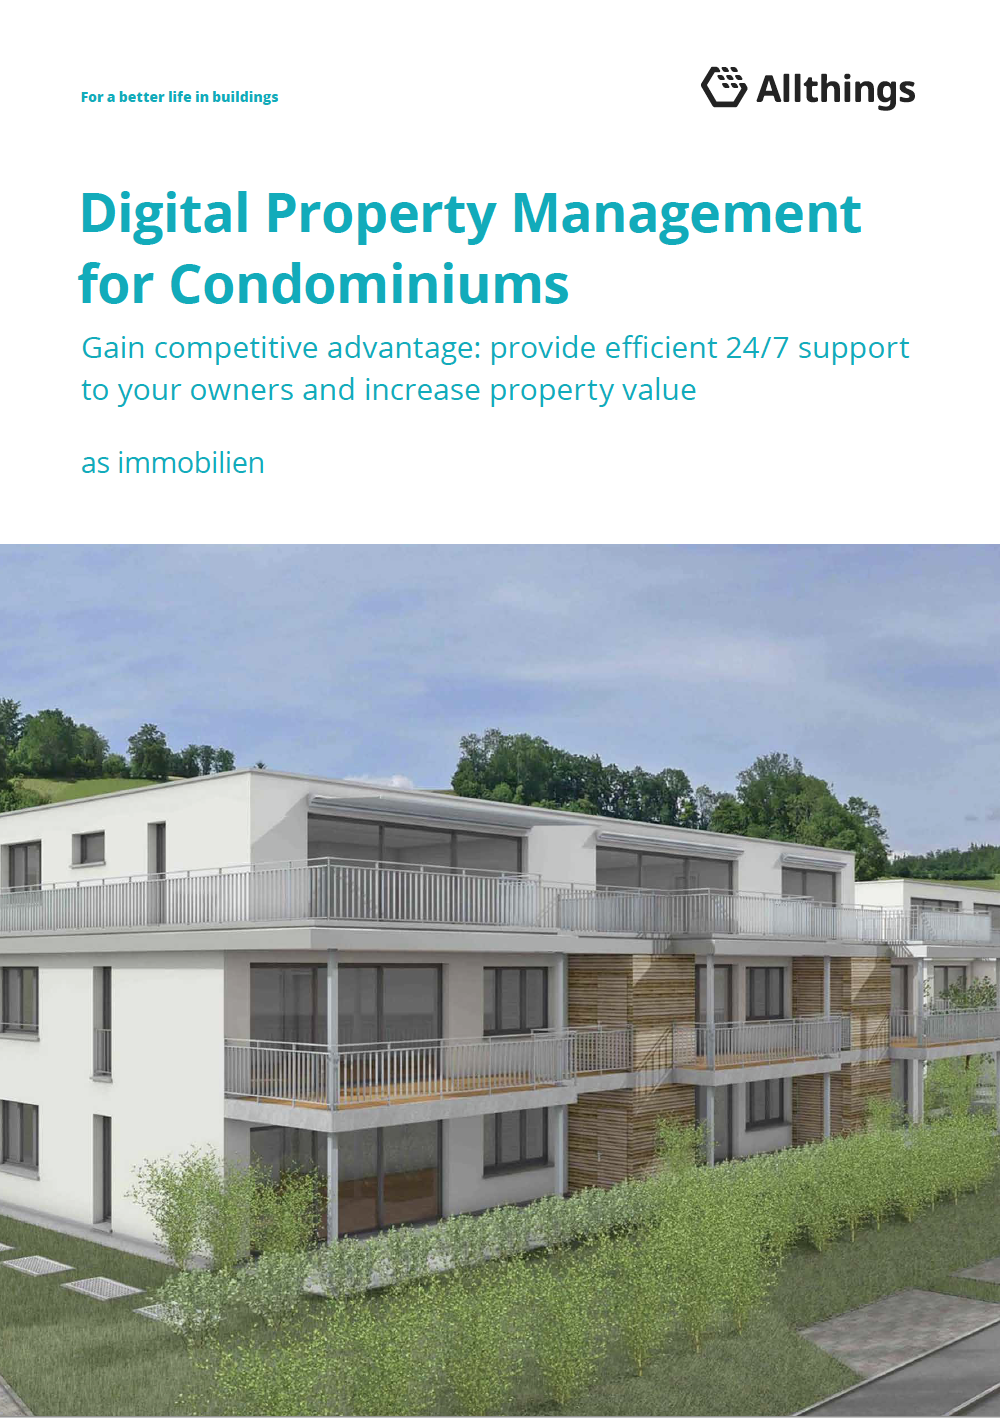 Digital Property Management for condominiums